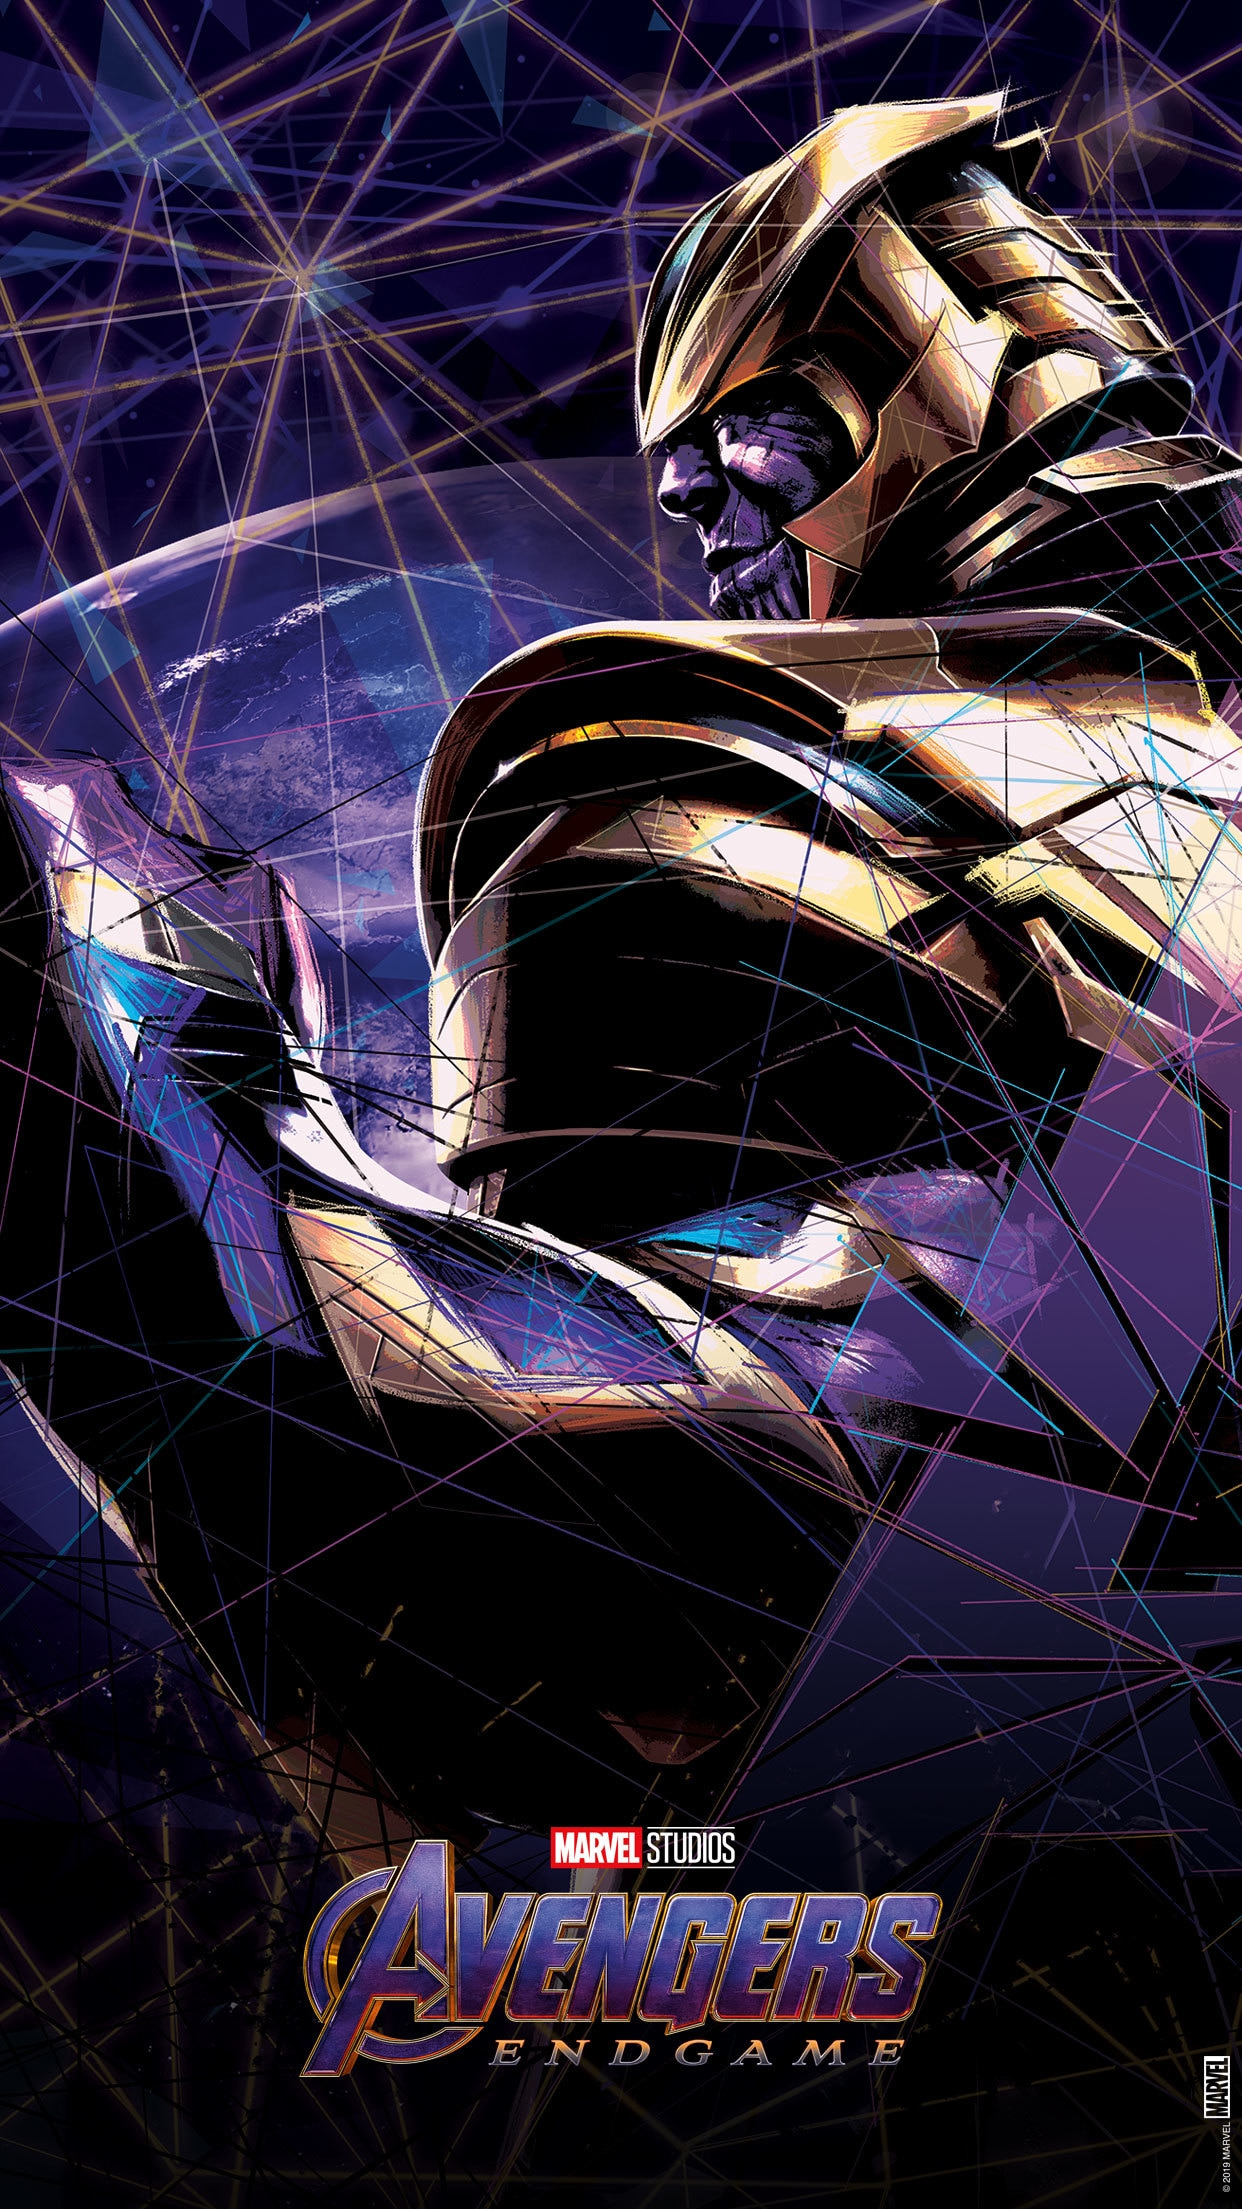 Avengers Endgame Mobile Wallpapers Disney Singapore